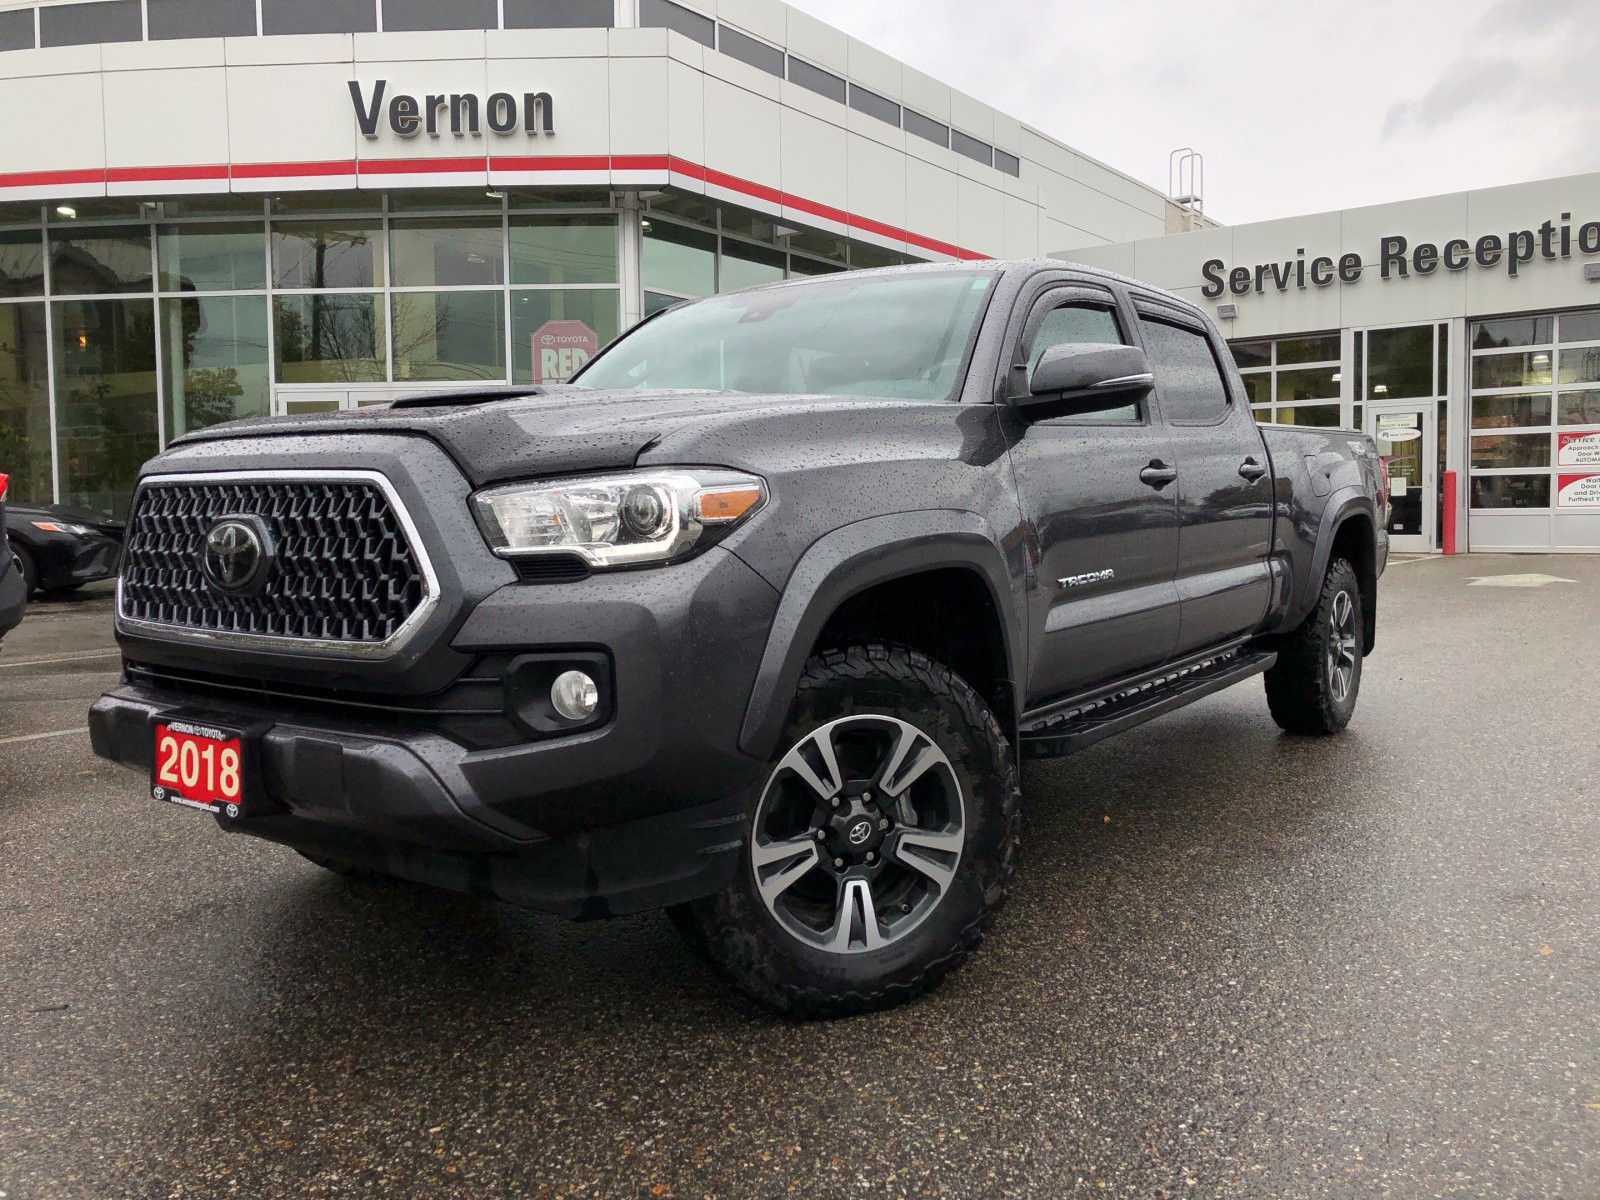 2018 Toyota Tacoma 4x4 TRD SPORT PREMIUM LEATHER SUNROOF (V2995A) Main Image